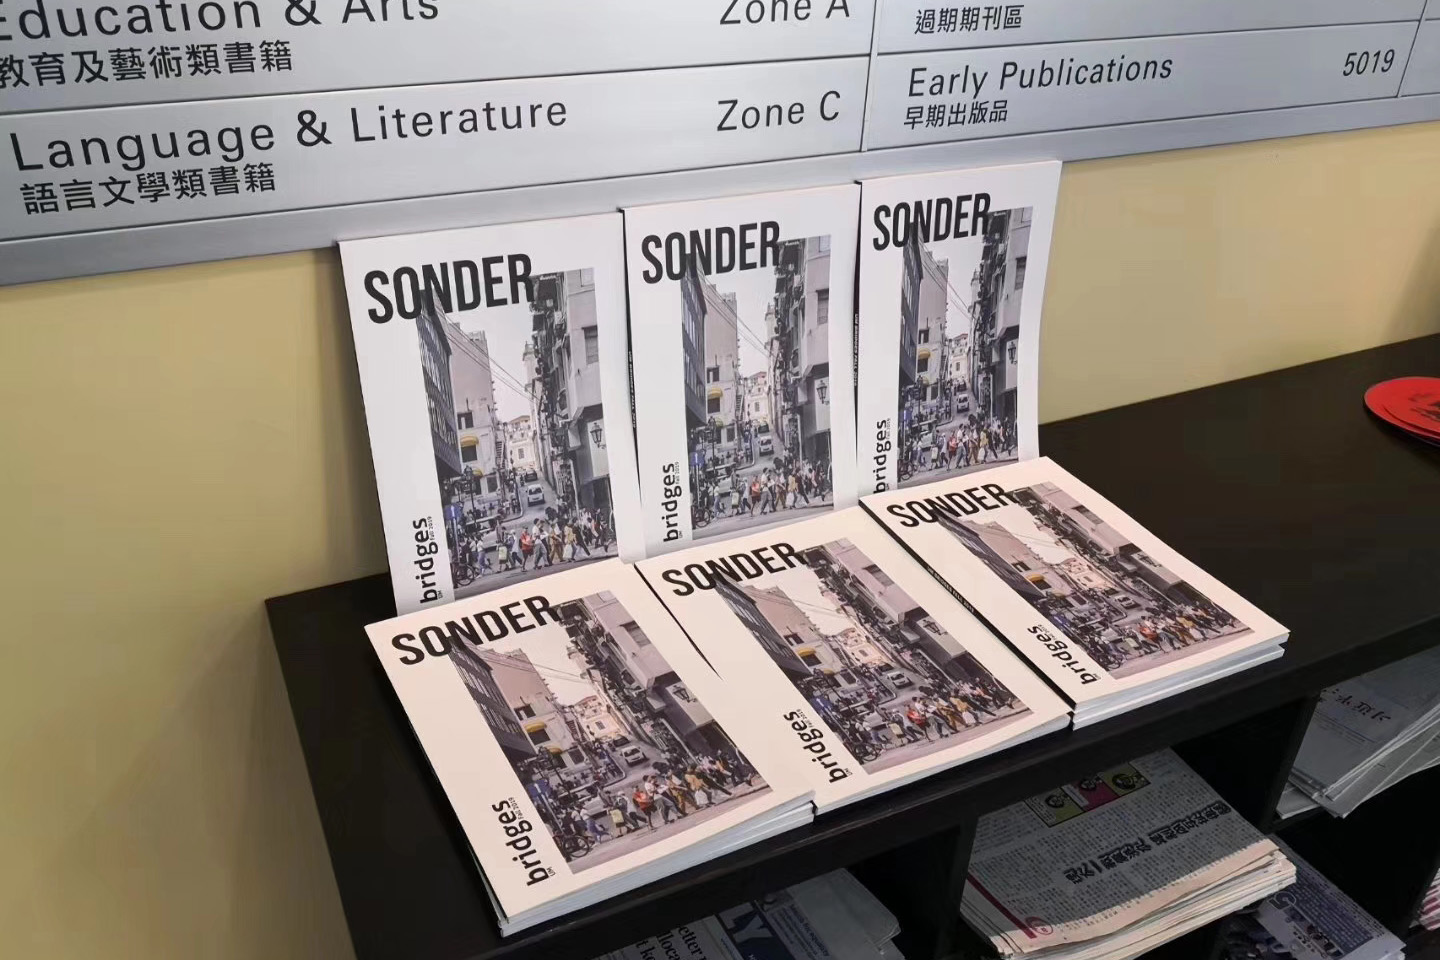 The magazine is now available for free on public bookshelves on campus